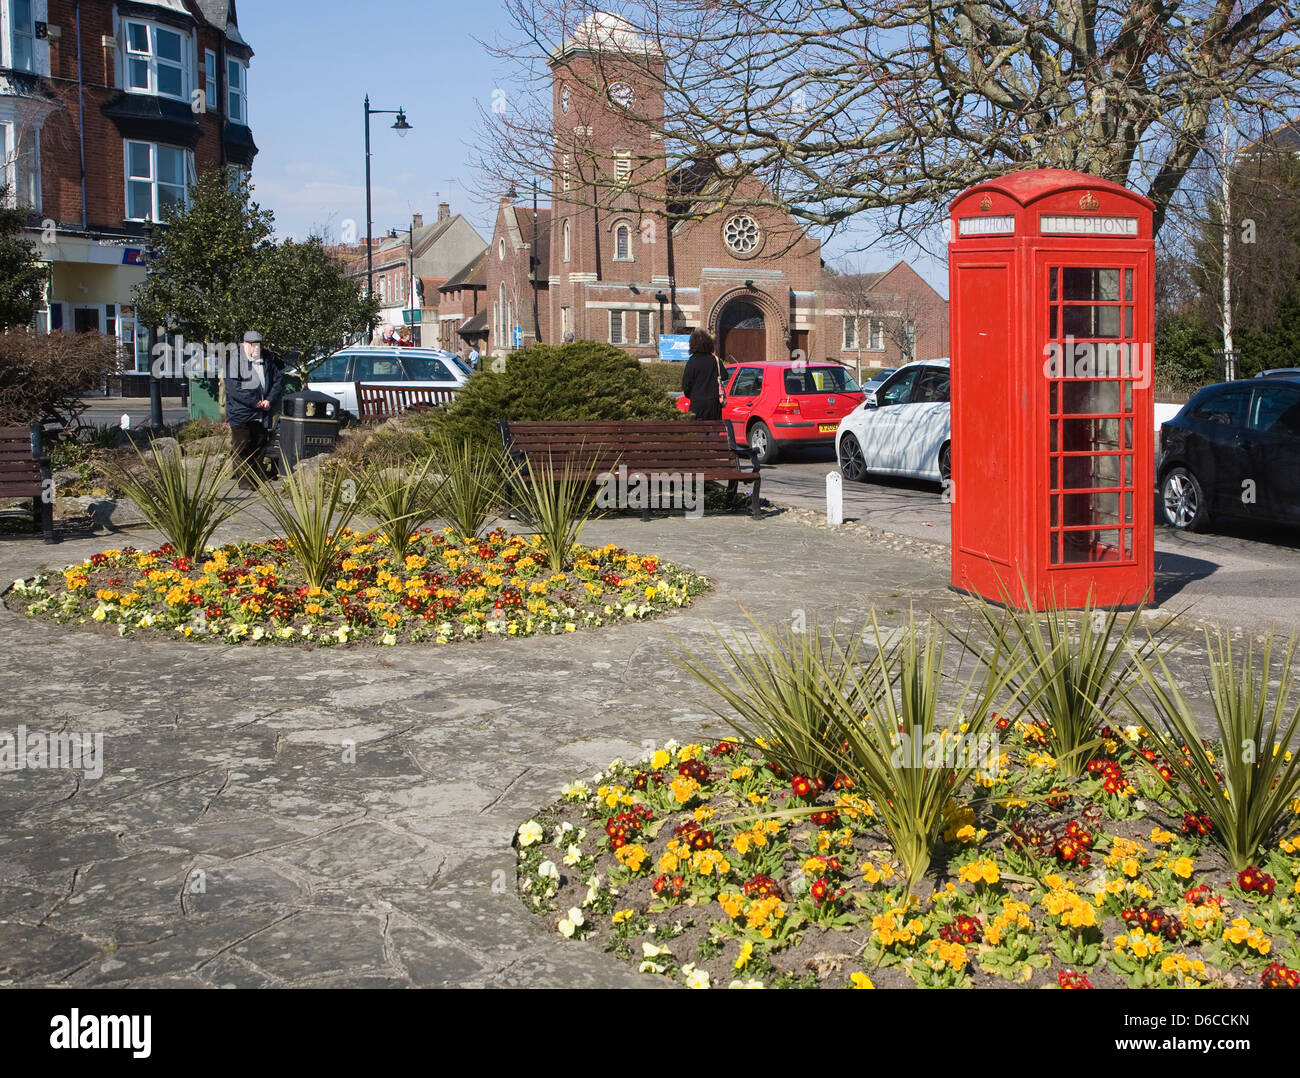 Gardens red telephone box Frinton on Sea, Essex, England - Stock Image